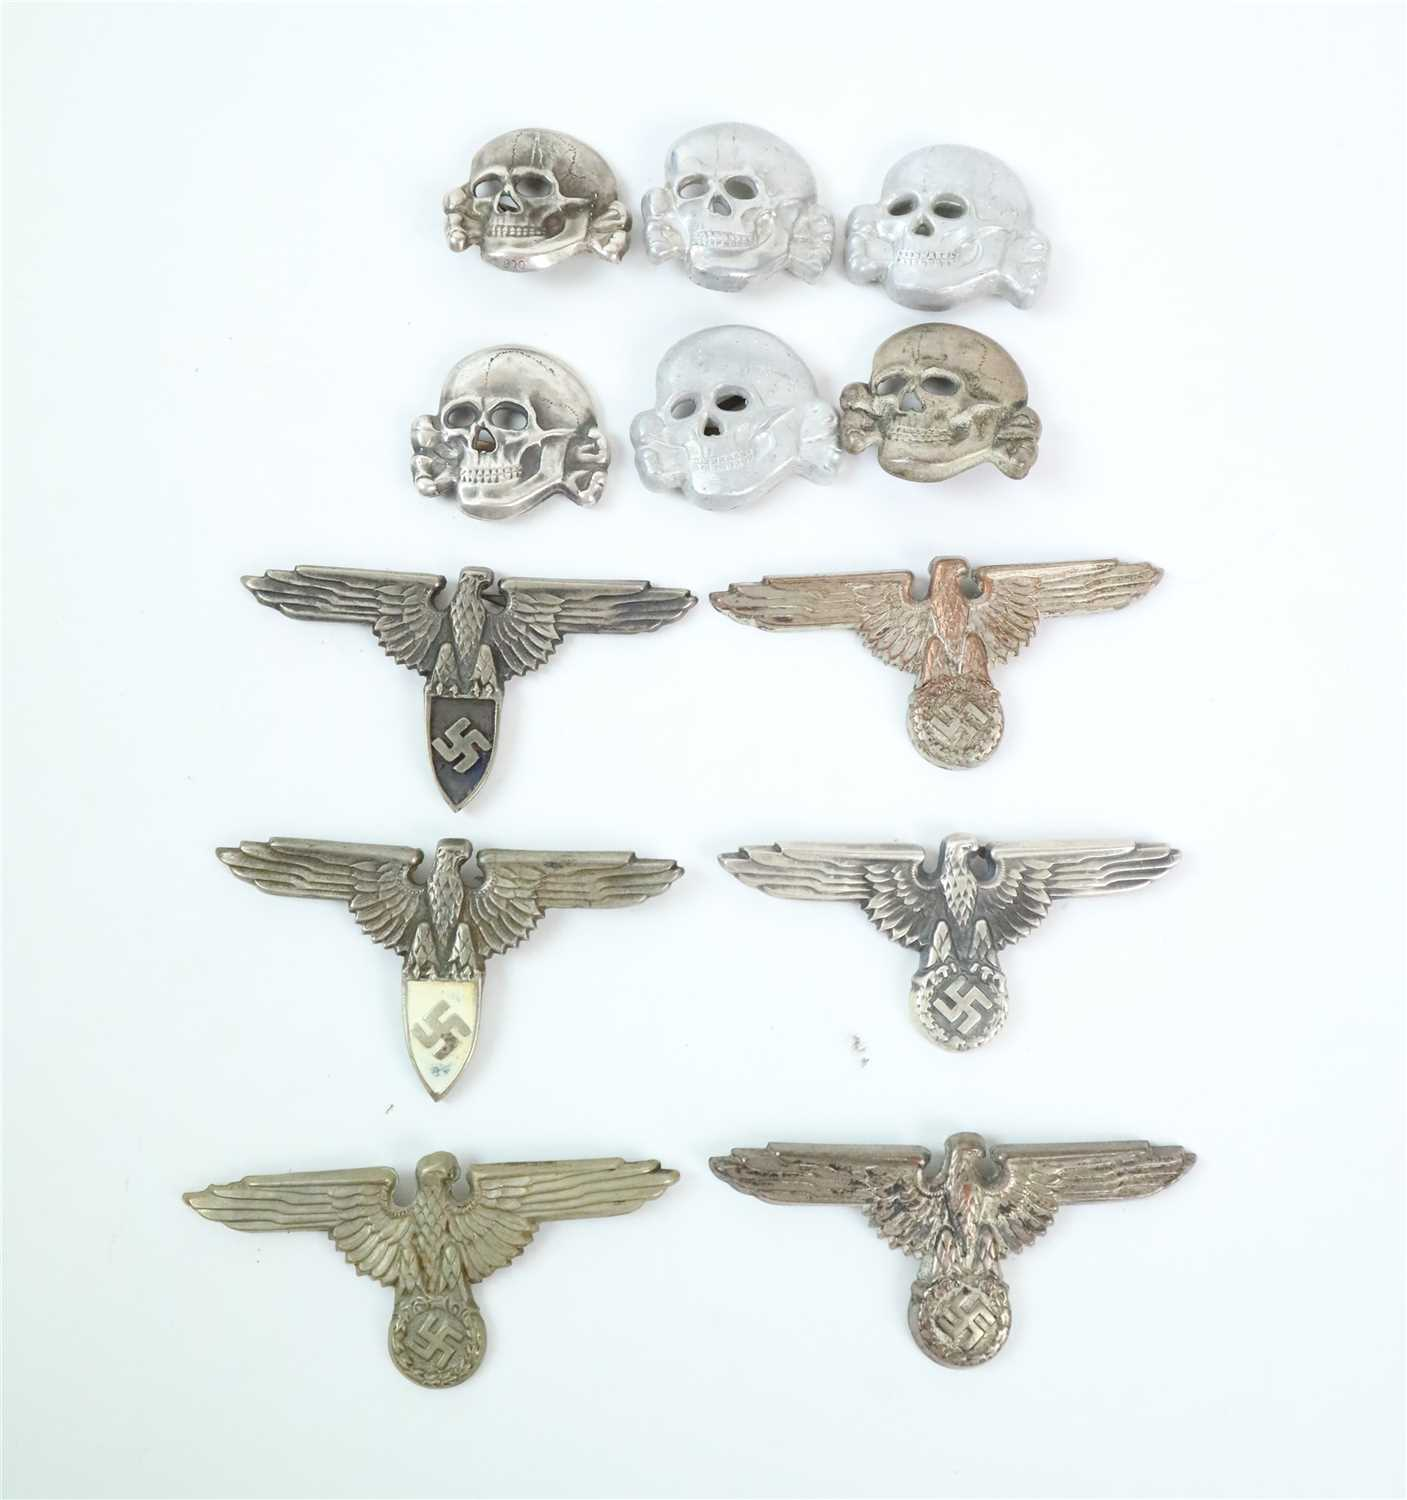 316 - Six SS-style cap eagles and six skulls